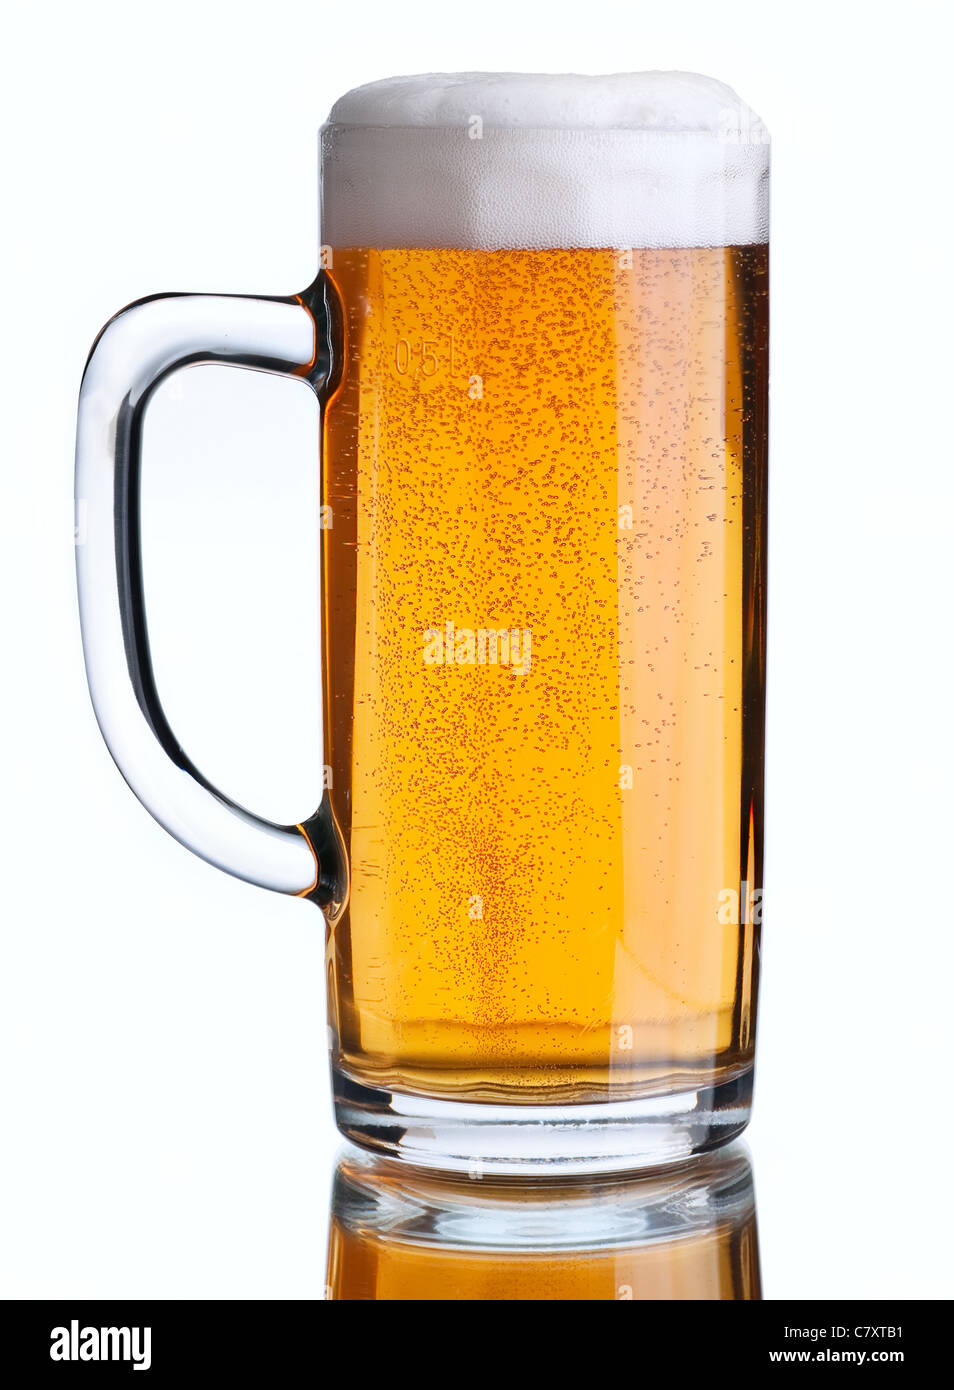 Beer beverage closeup in glass on white with hahdle - Stock Image